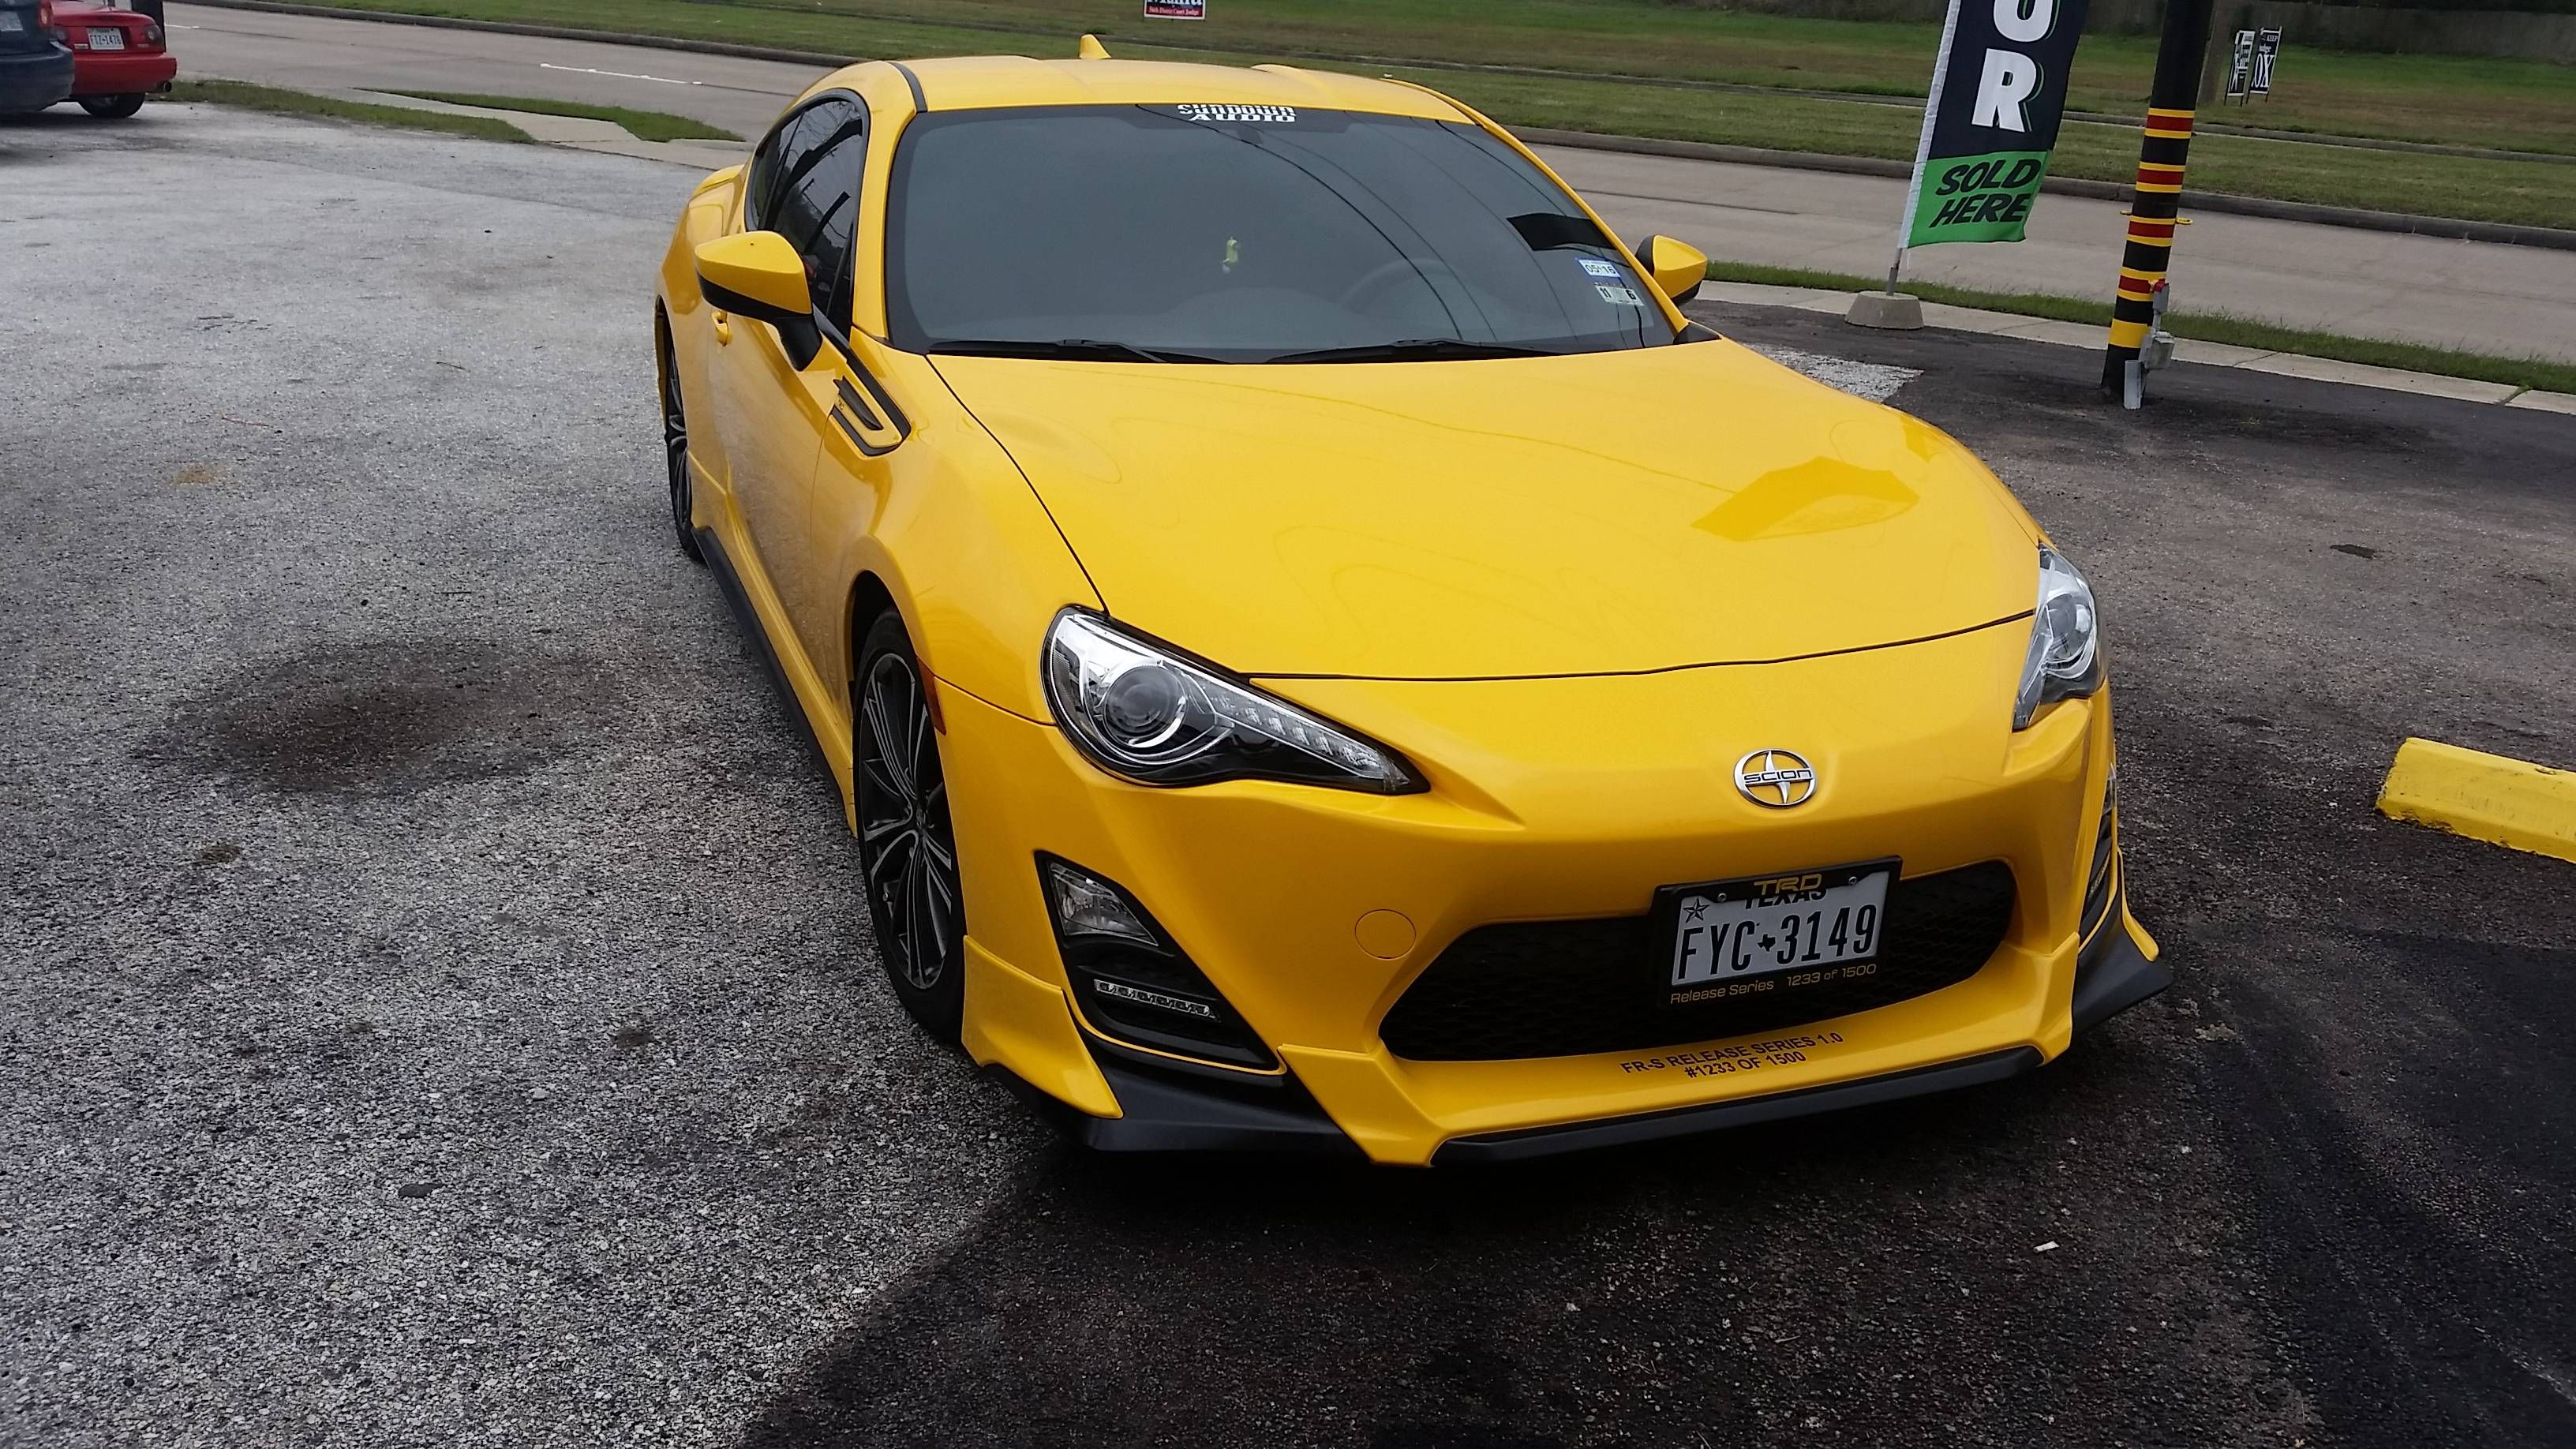 Found A Trd Scion Fr S One Of 1500 R Spotted Scion Trd Toyota Gt86